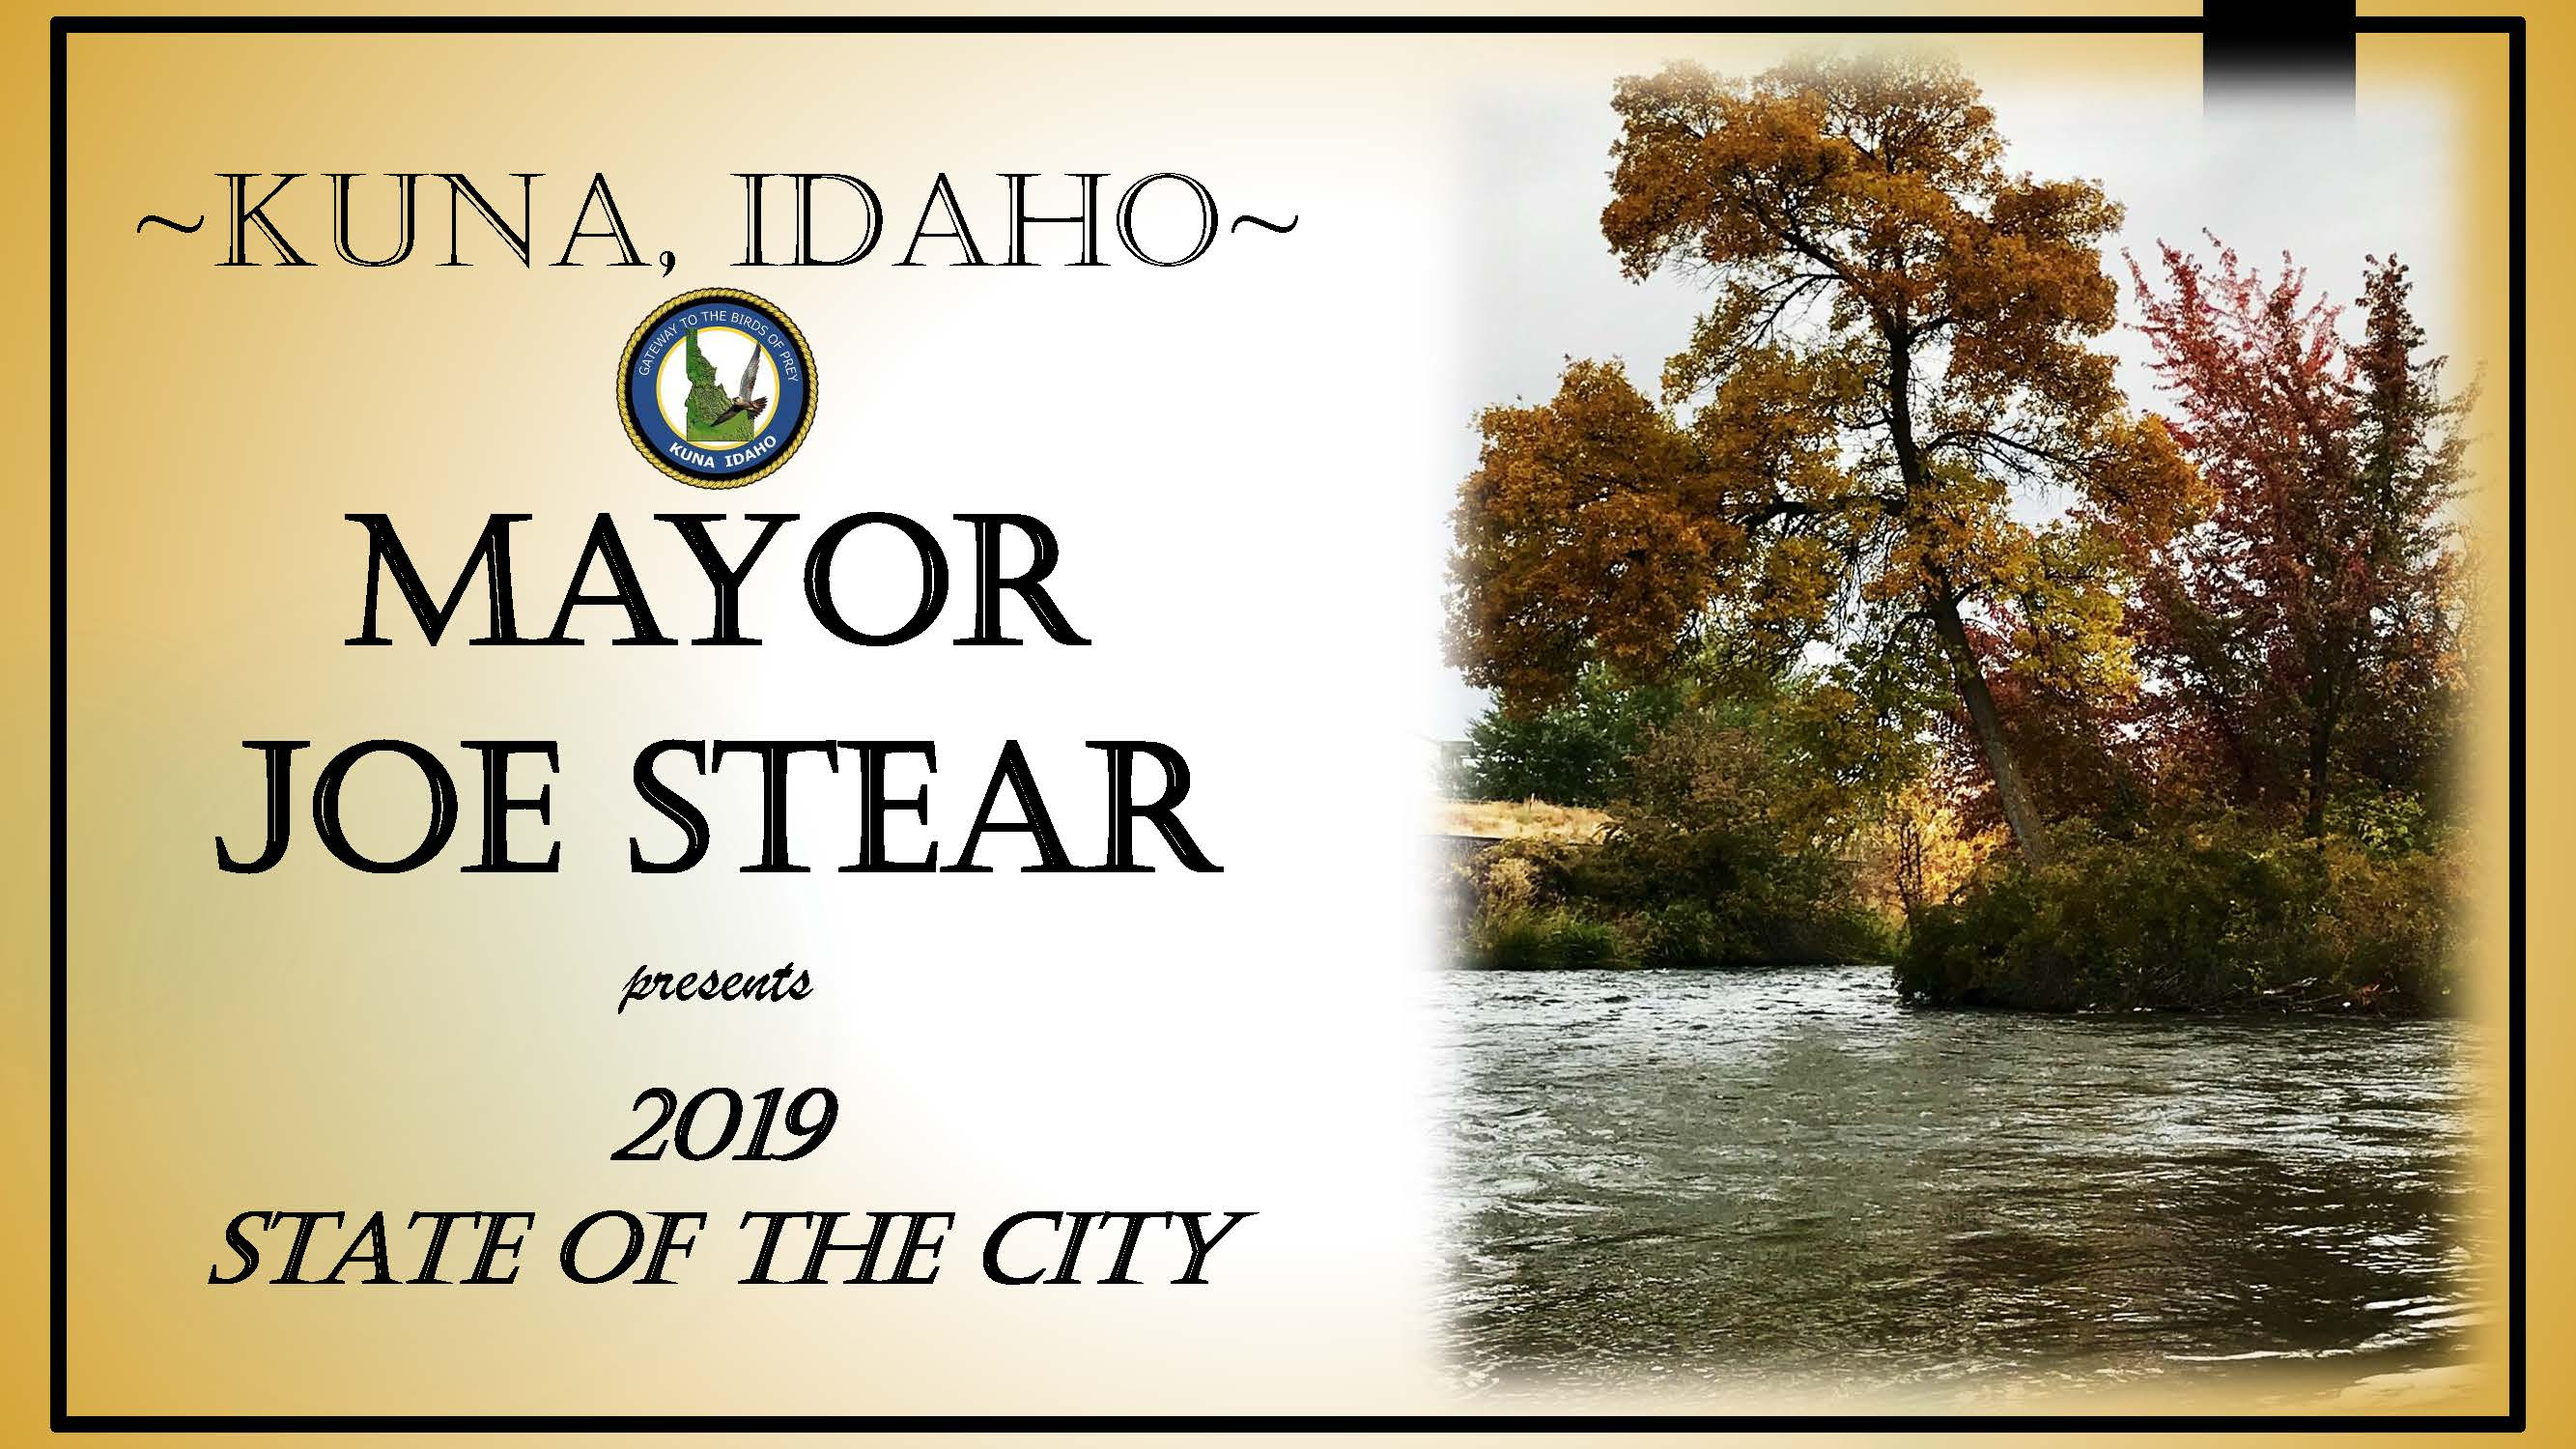 2019 State of the City Page 1 (JPG)